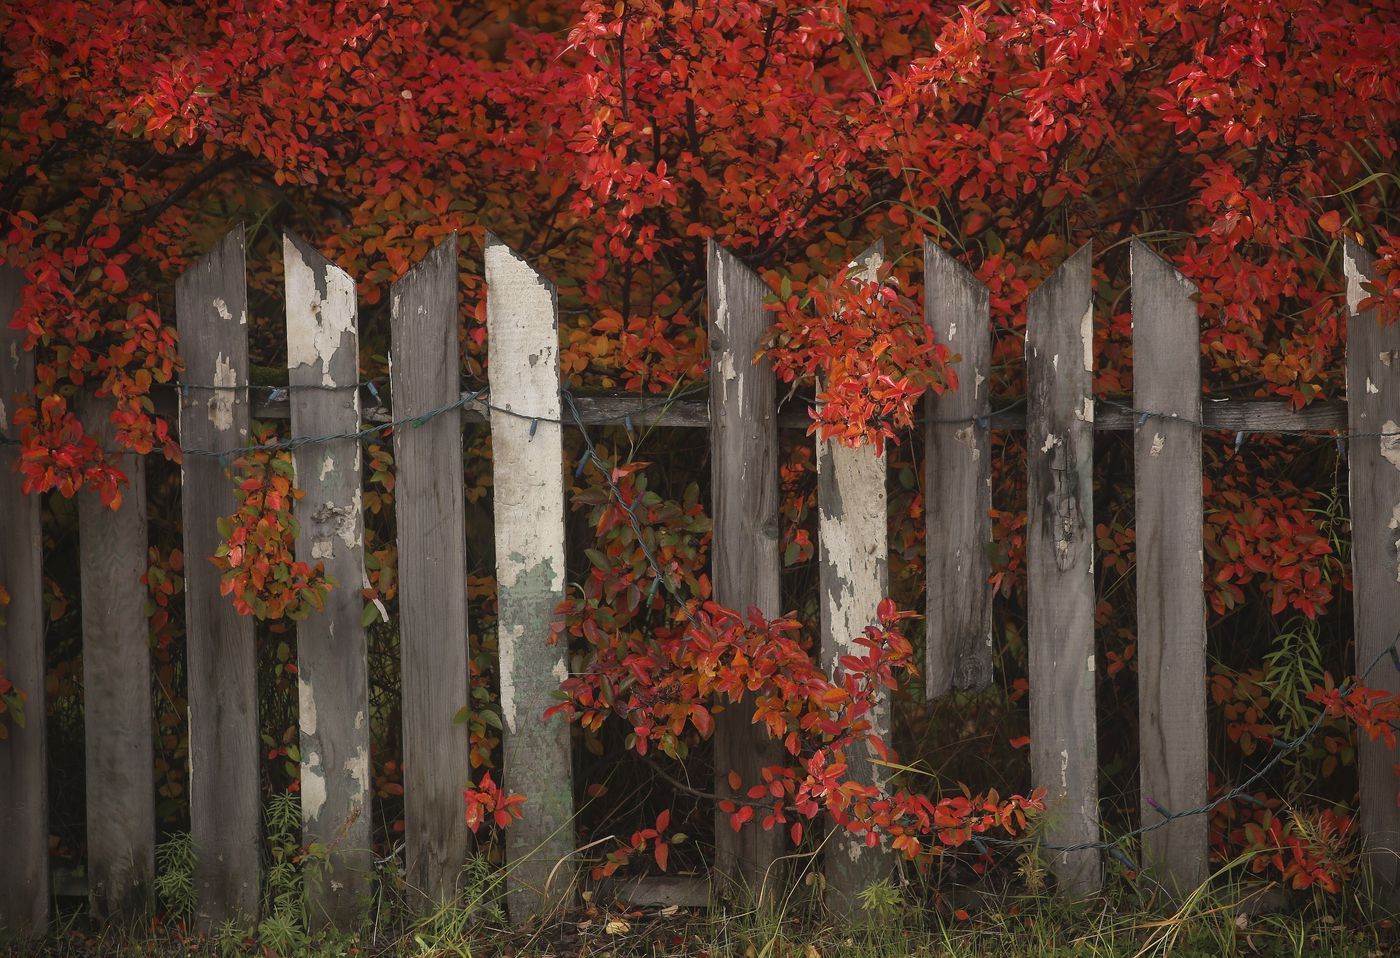 Leaves turn bright red and poke through a wooden fence in Anchorage on Sept. 25, 2020. (Emily Mesner / ADN)